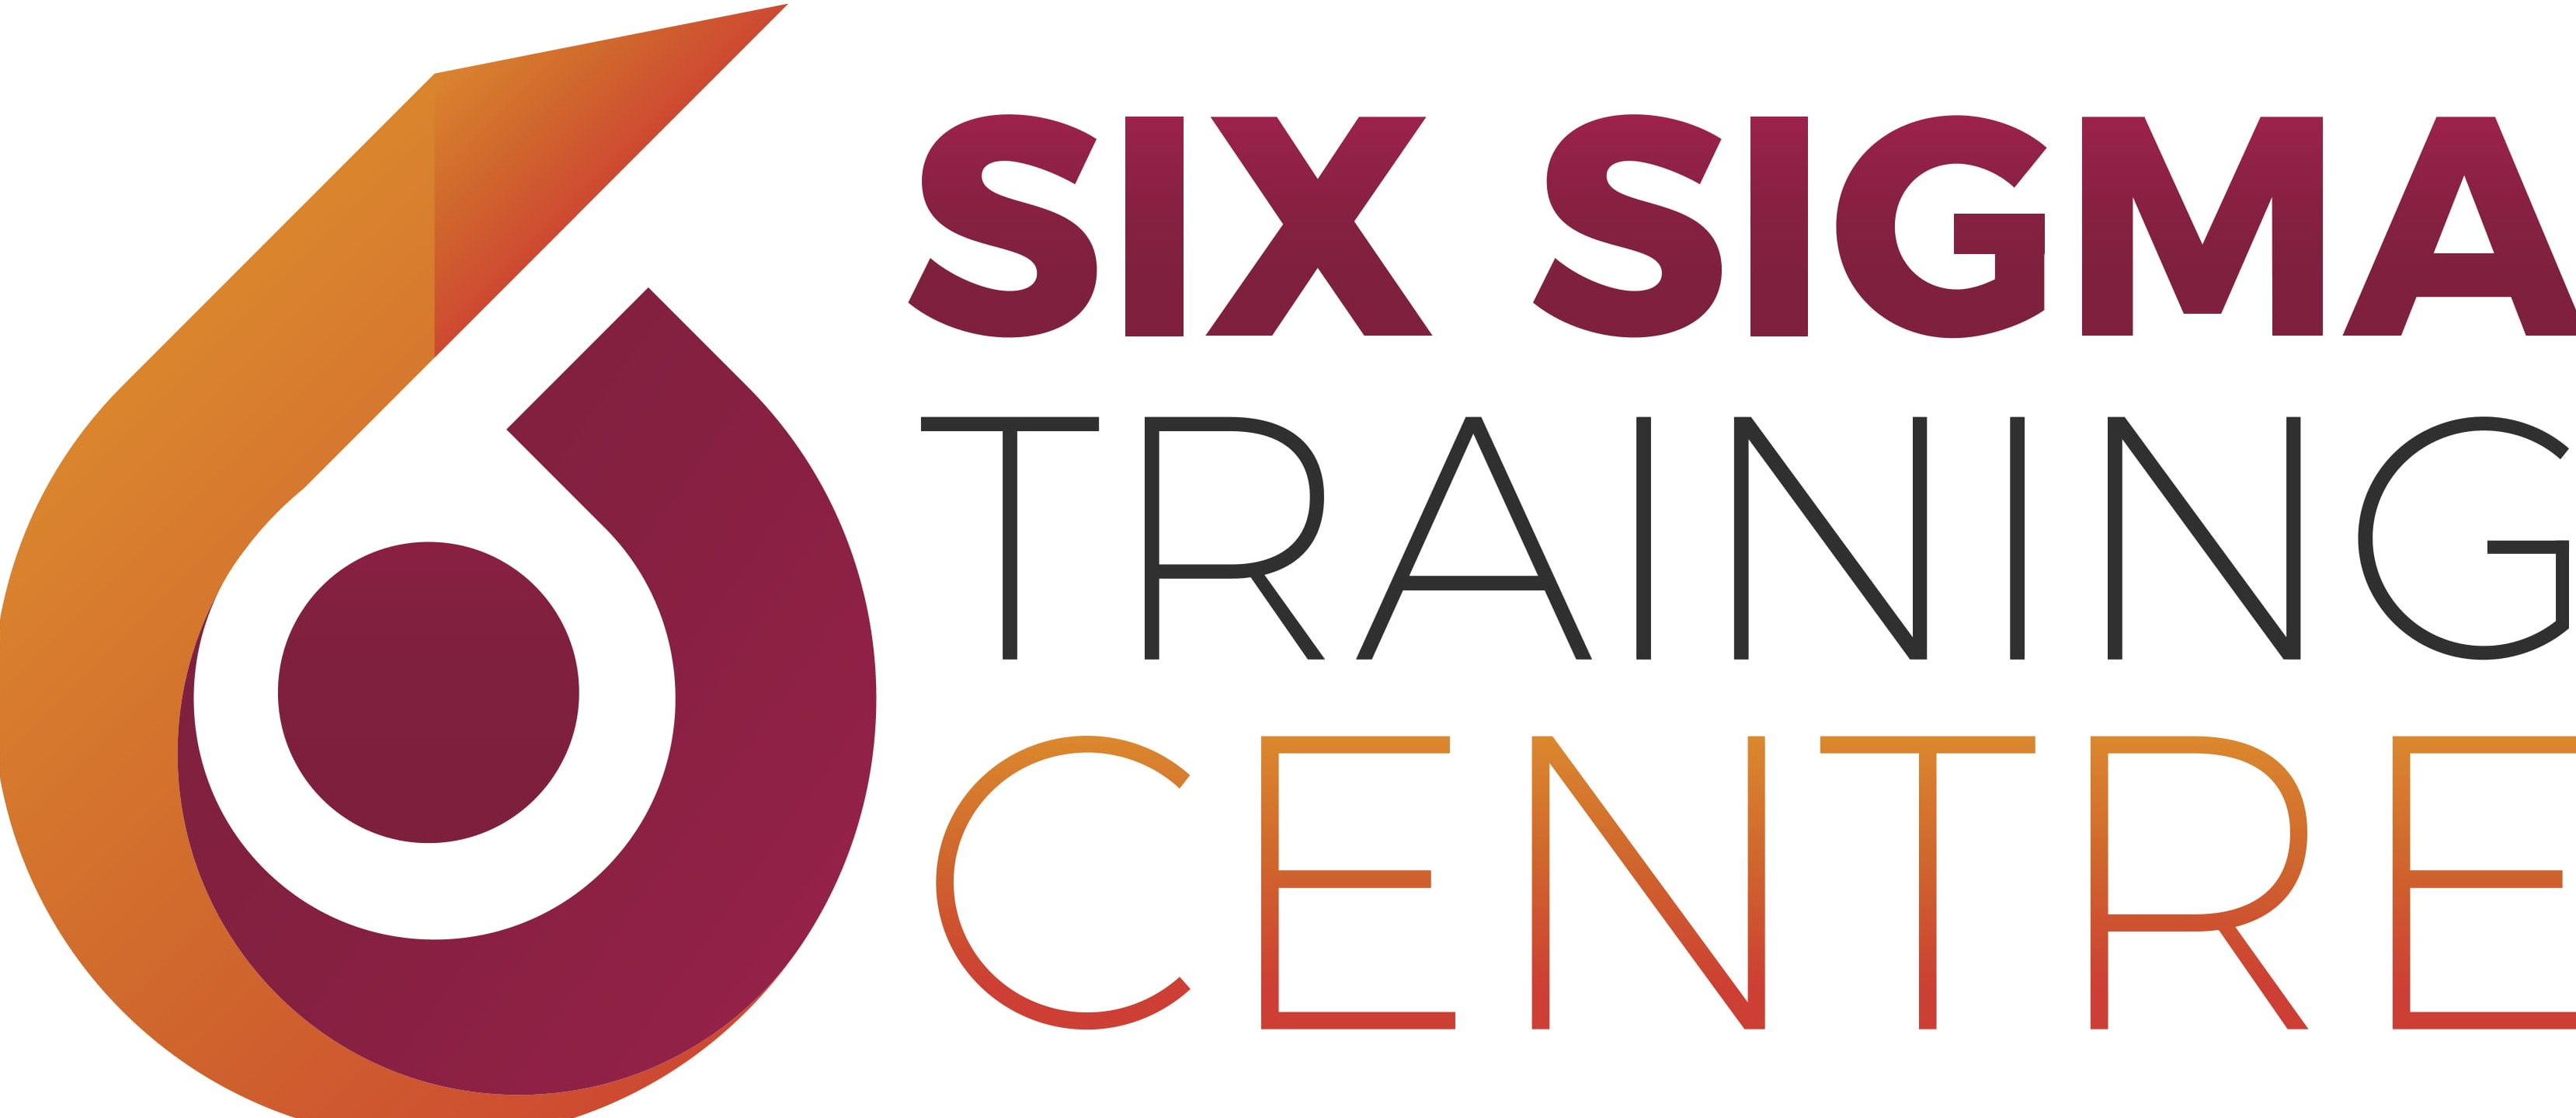 Six Sigma Training Center